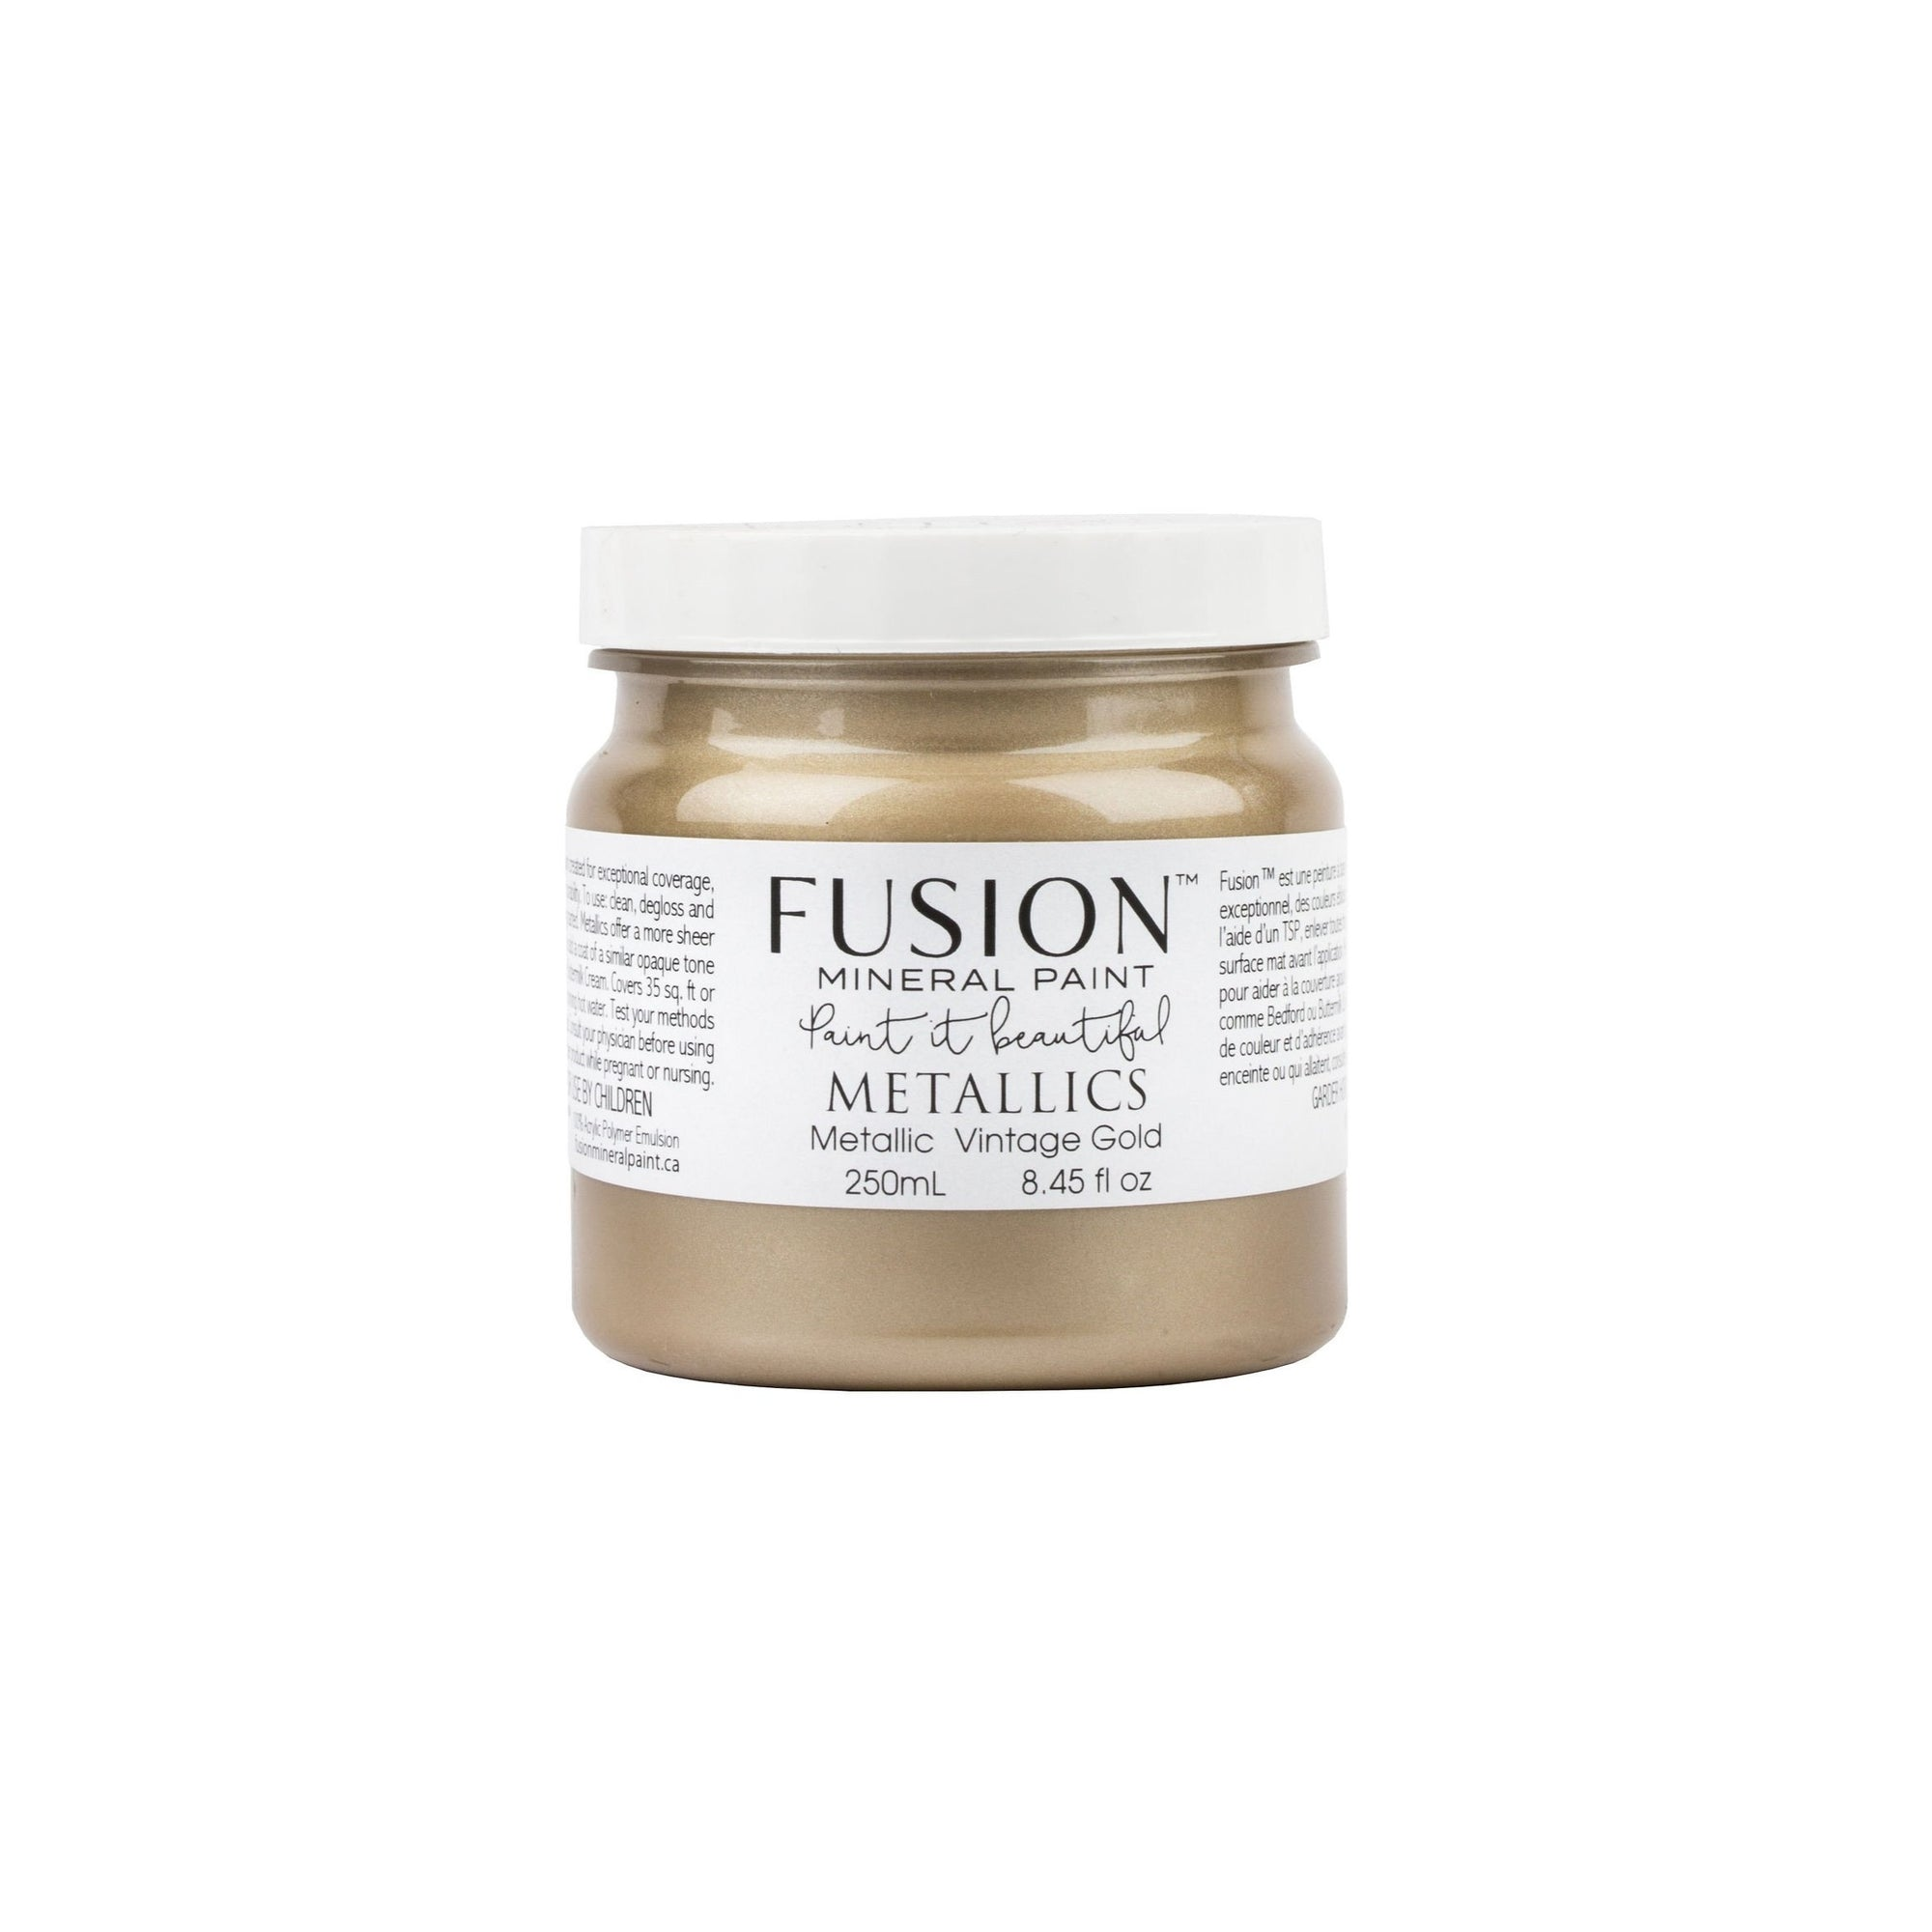 fusion mineral paint farmhouse inspired metallic vintage gold